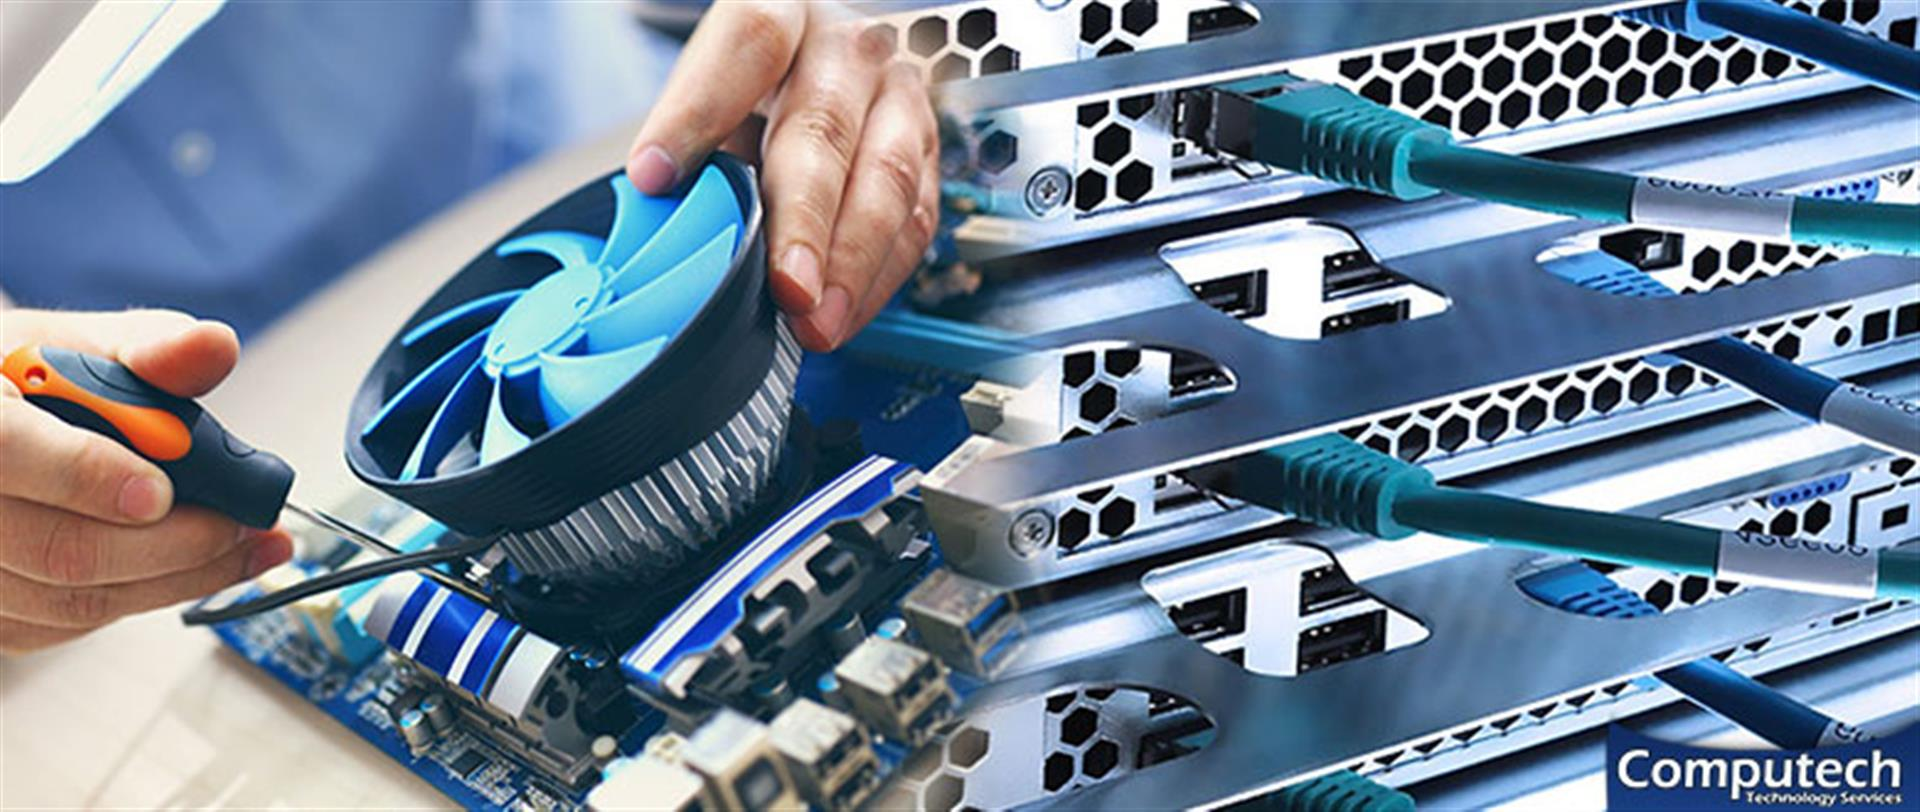 Covington Virginia Onsite PC & Printer Repair, Networks, Voice & Data Cabling Solutions